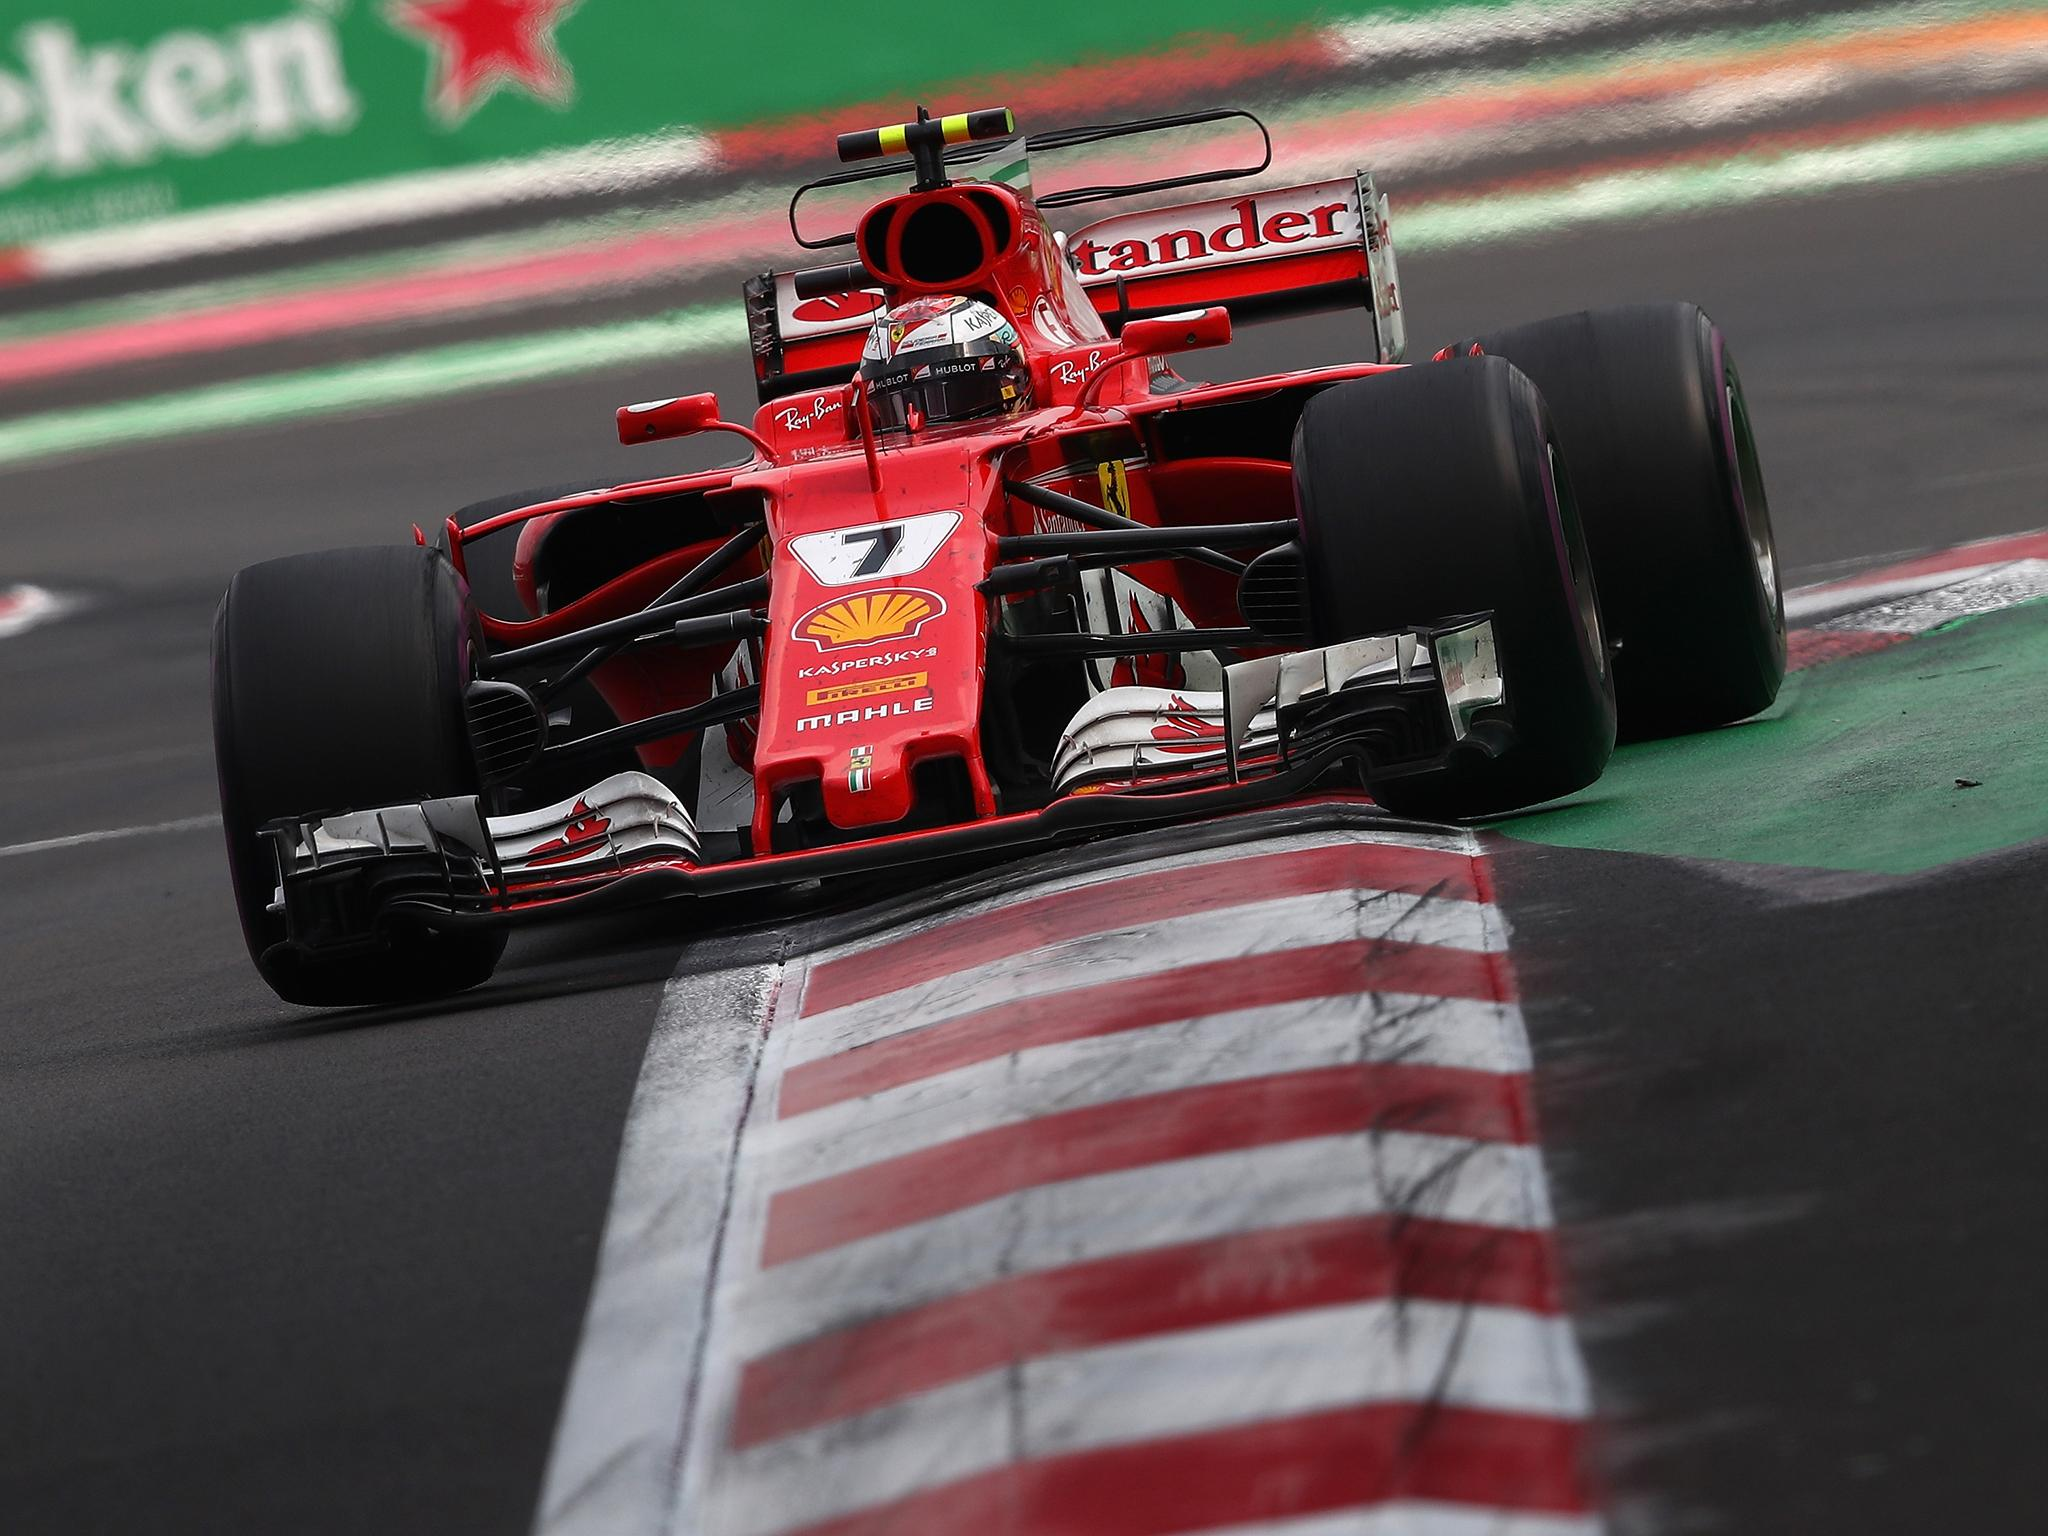 Fernando Alonso credits halo for saving Charles Leclerc from serious